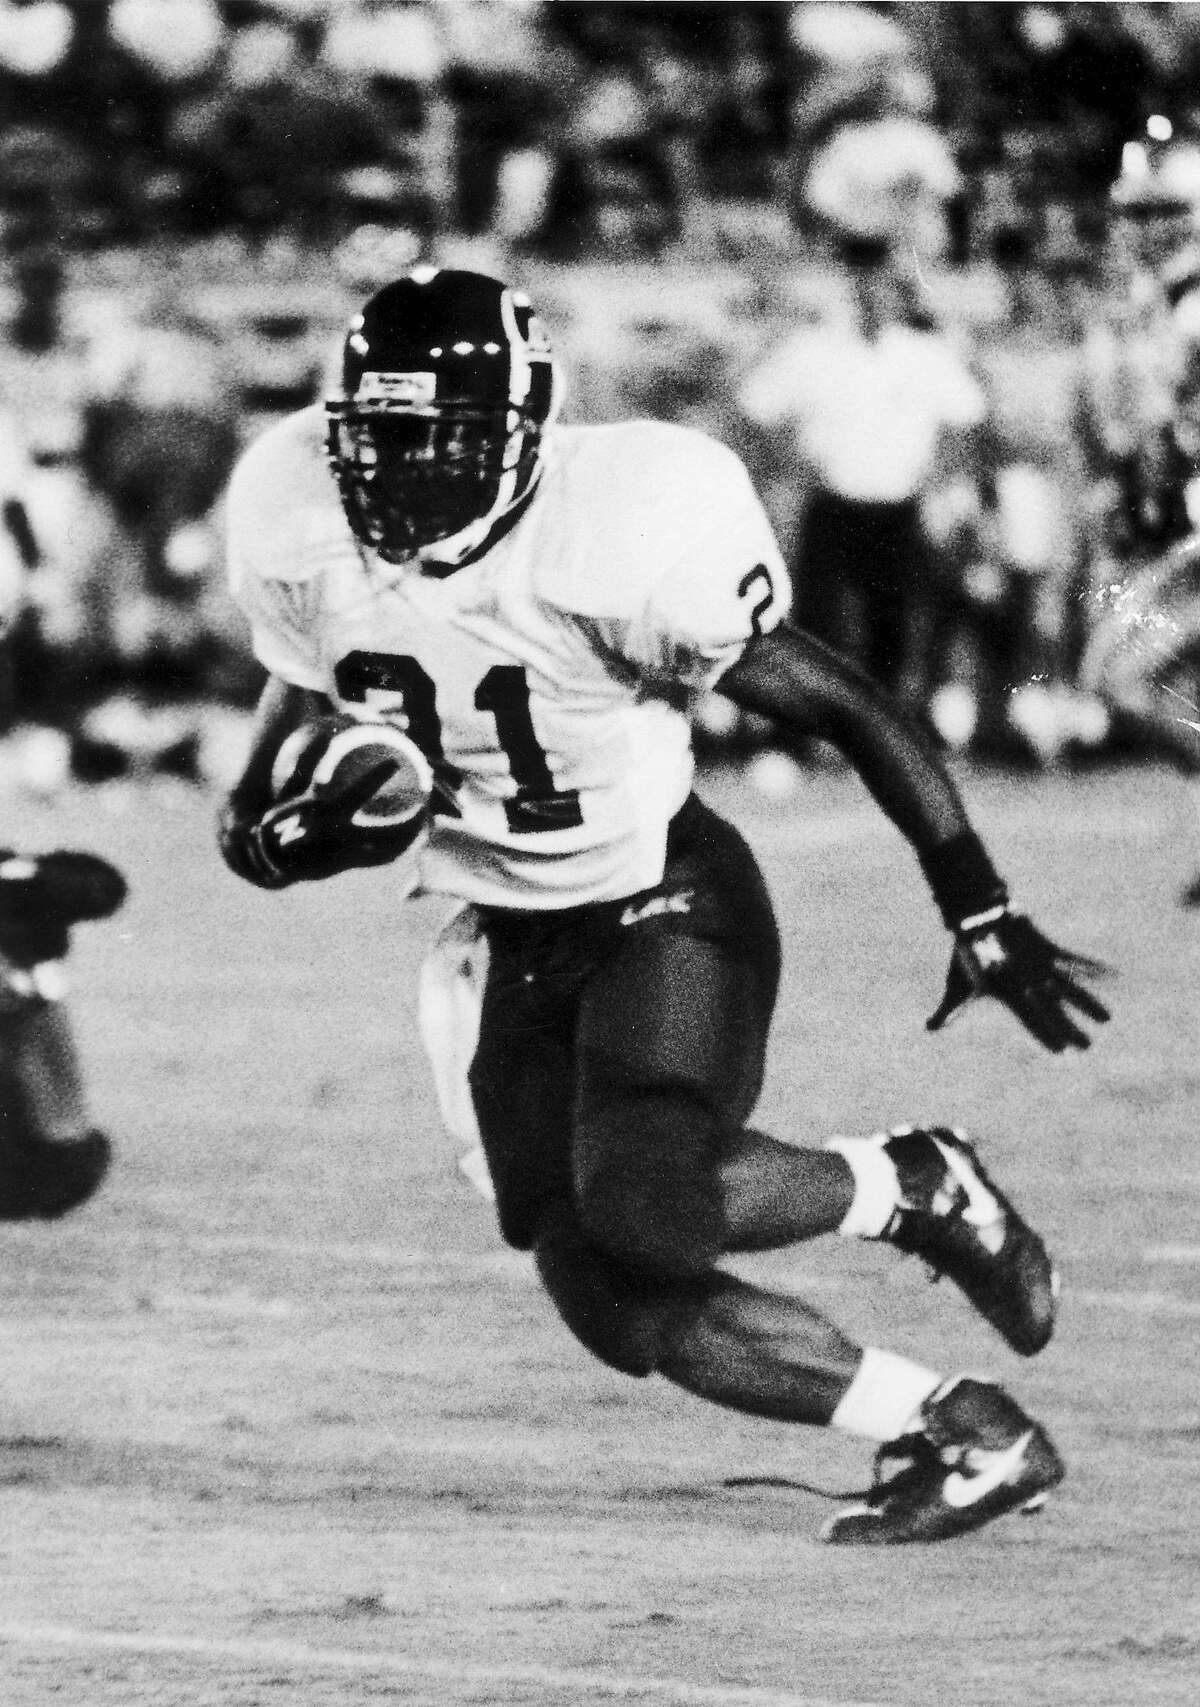 Lindsey Chapman playing for Cal in the early 1990s